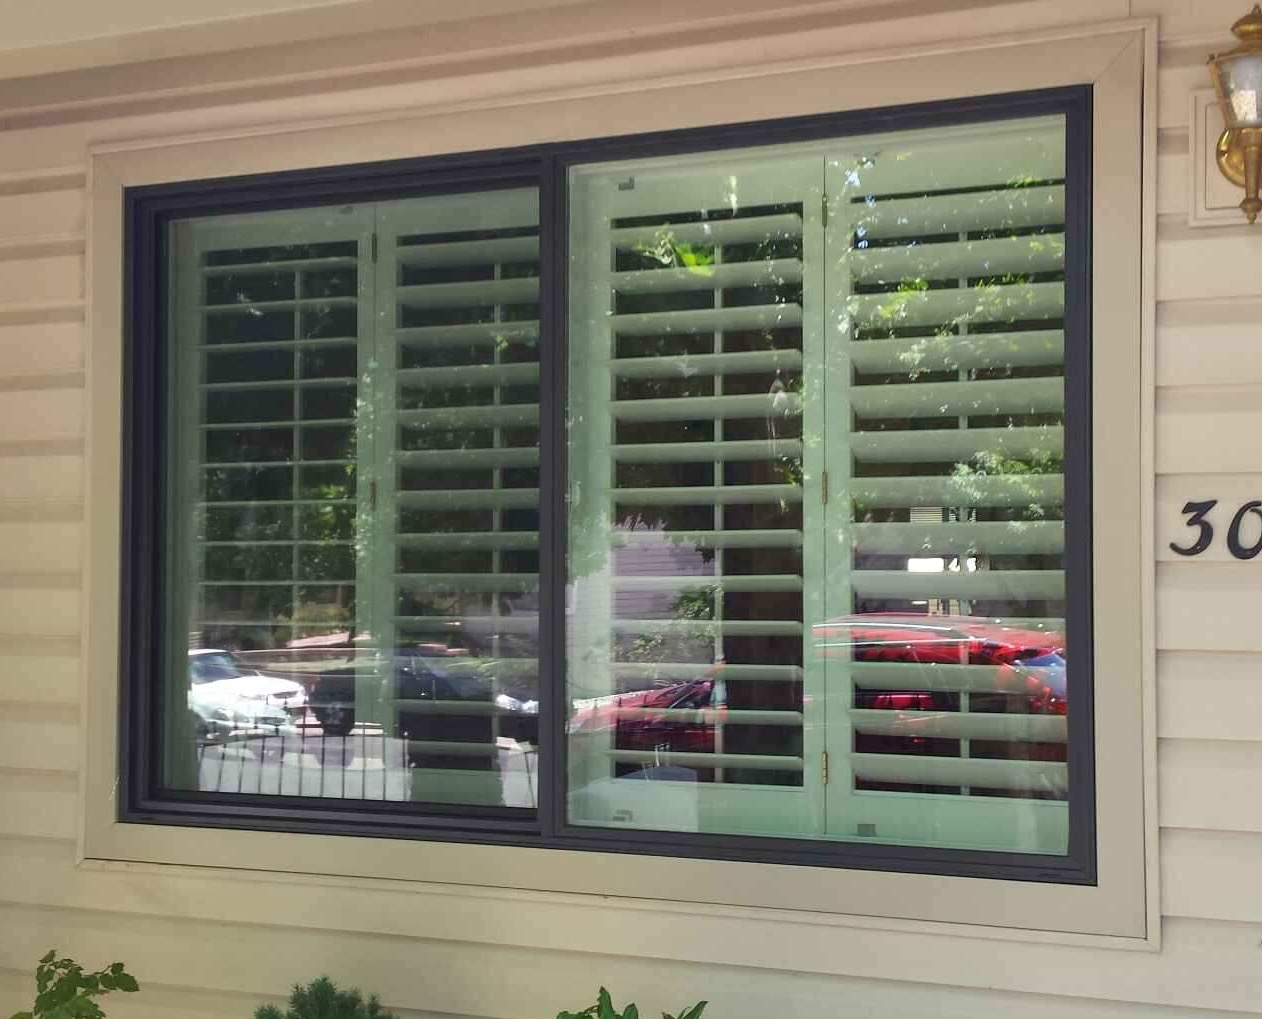 window-replacement-lowes.jpg